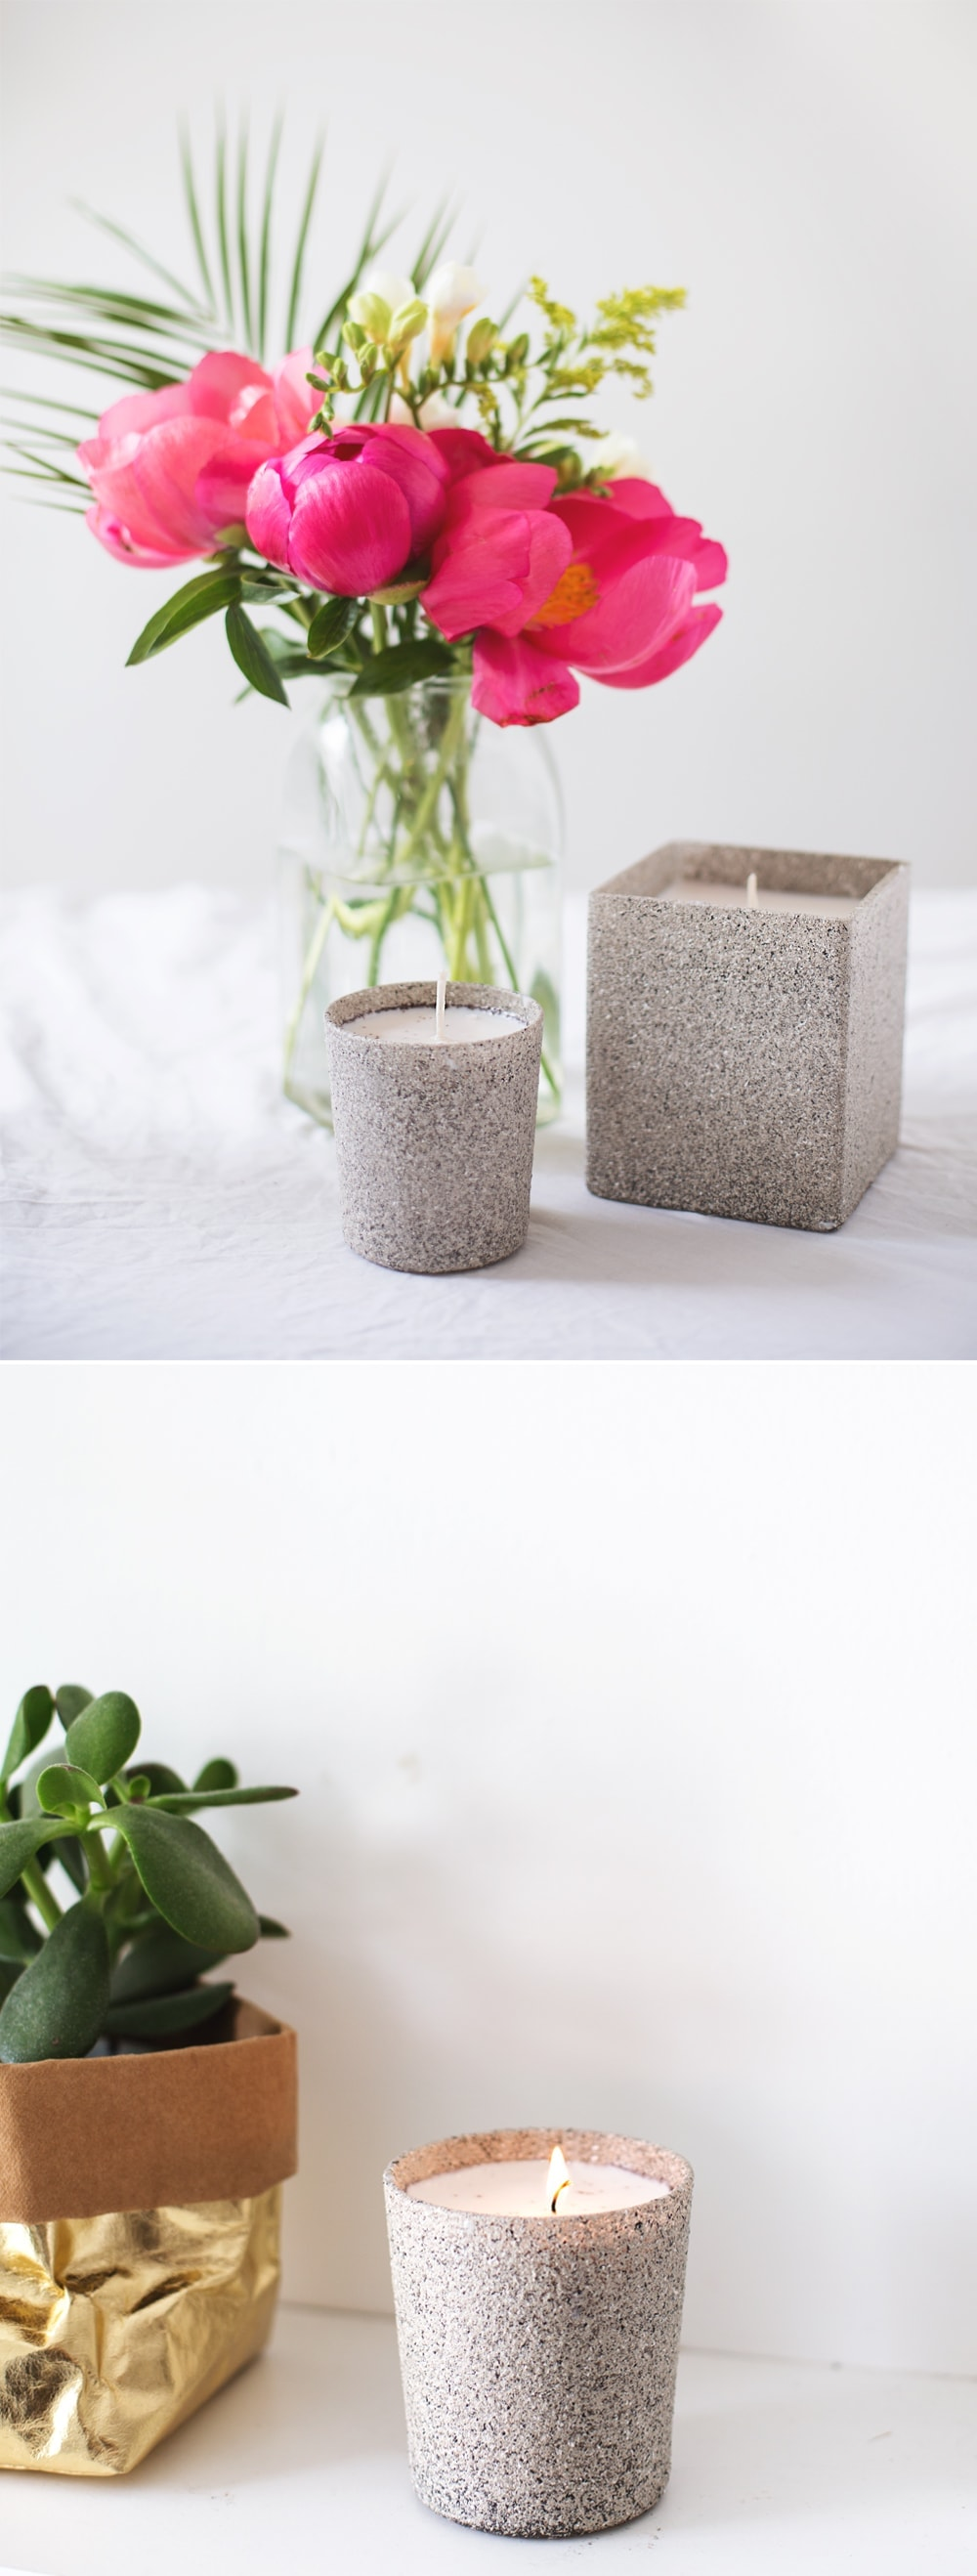 DIY stone affect candle